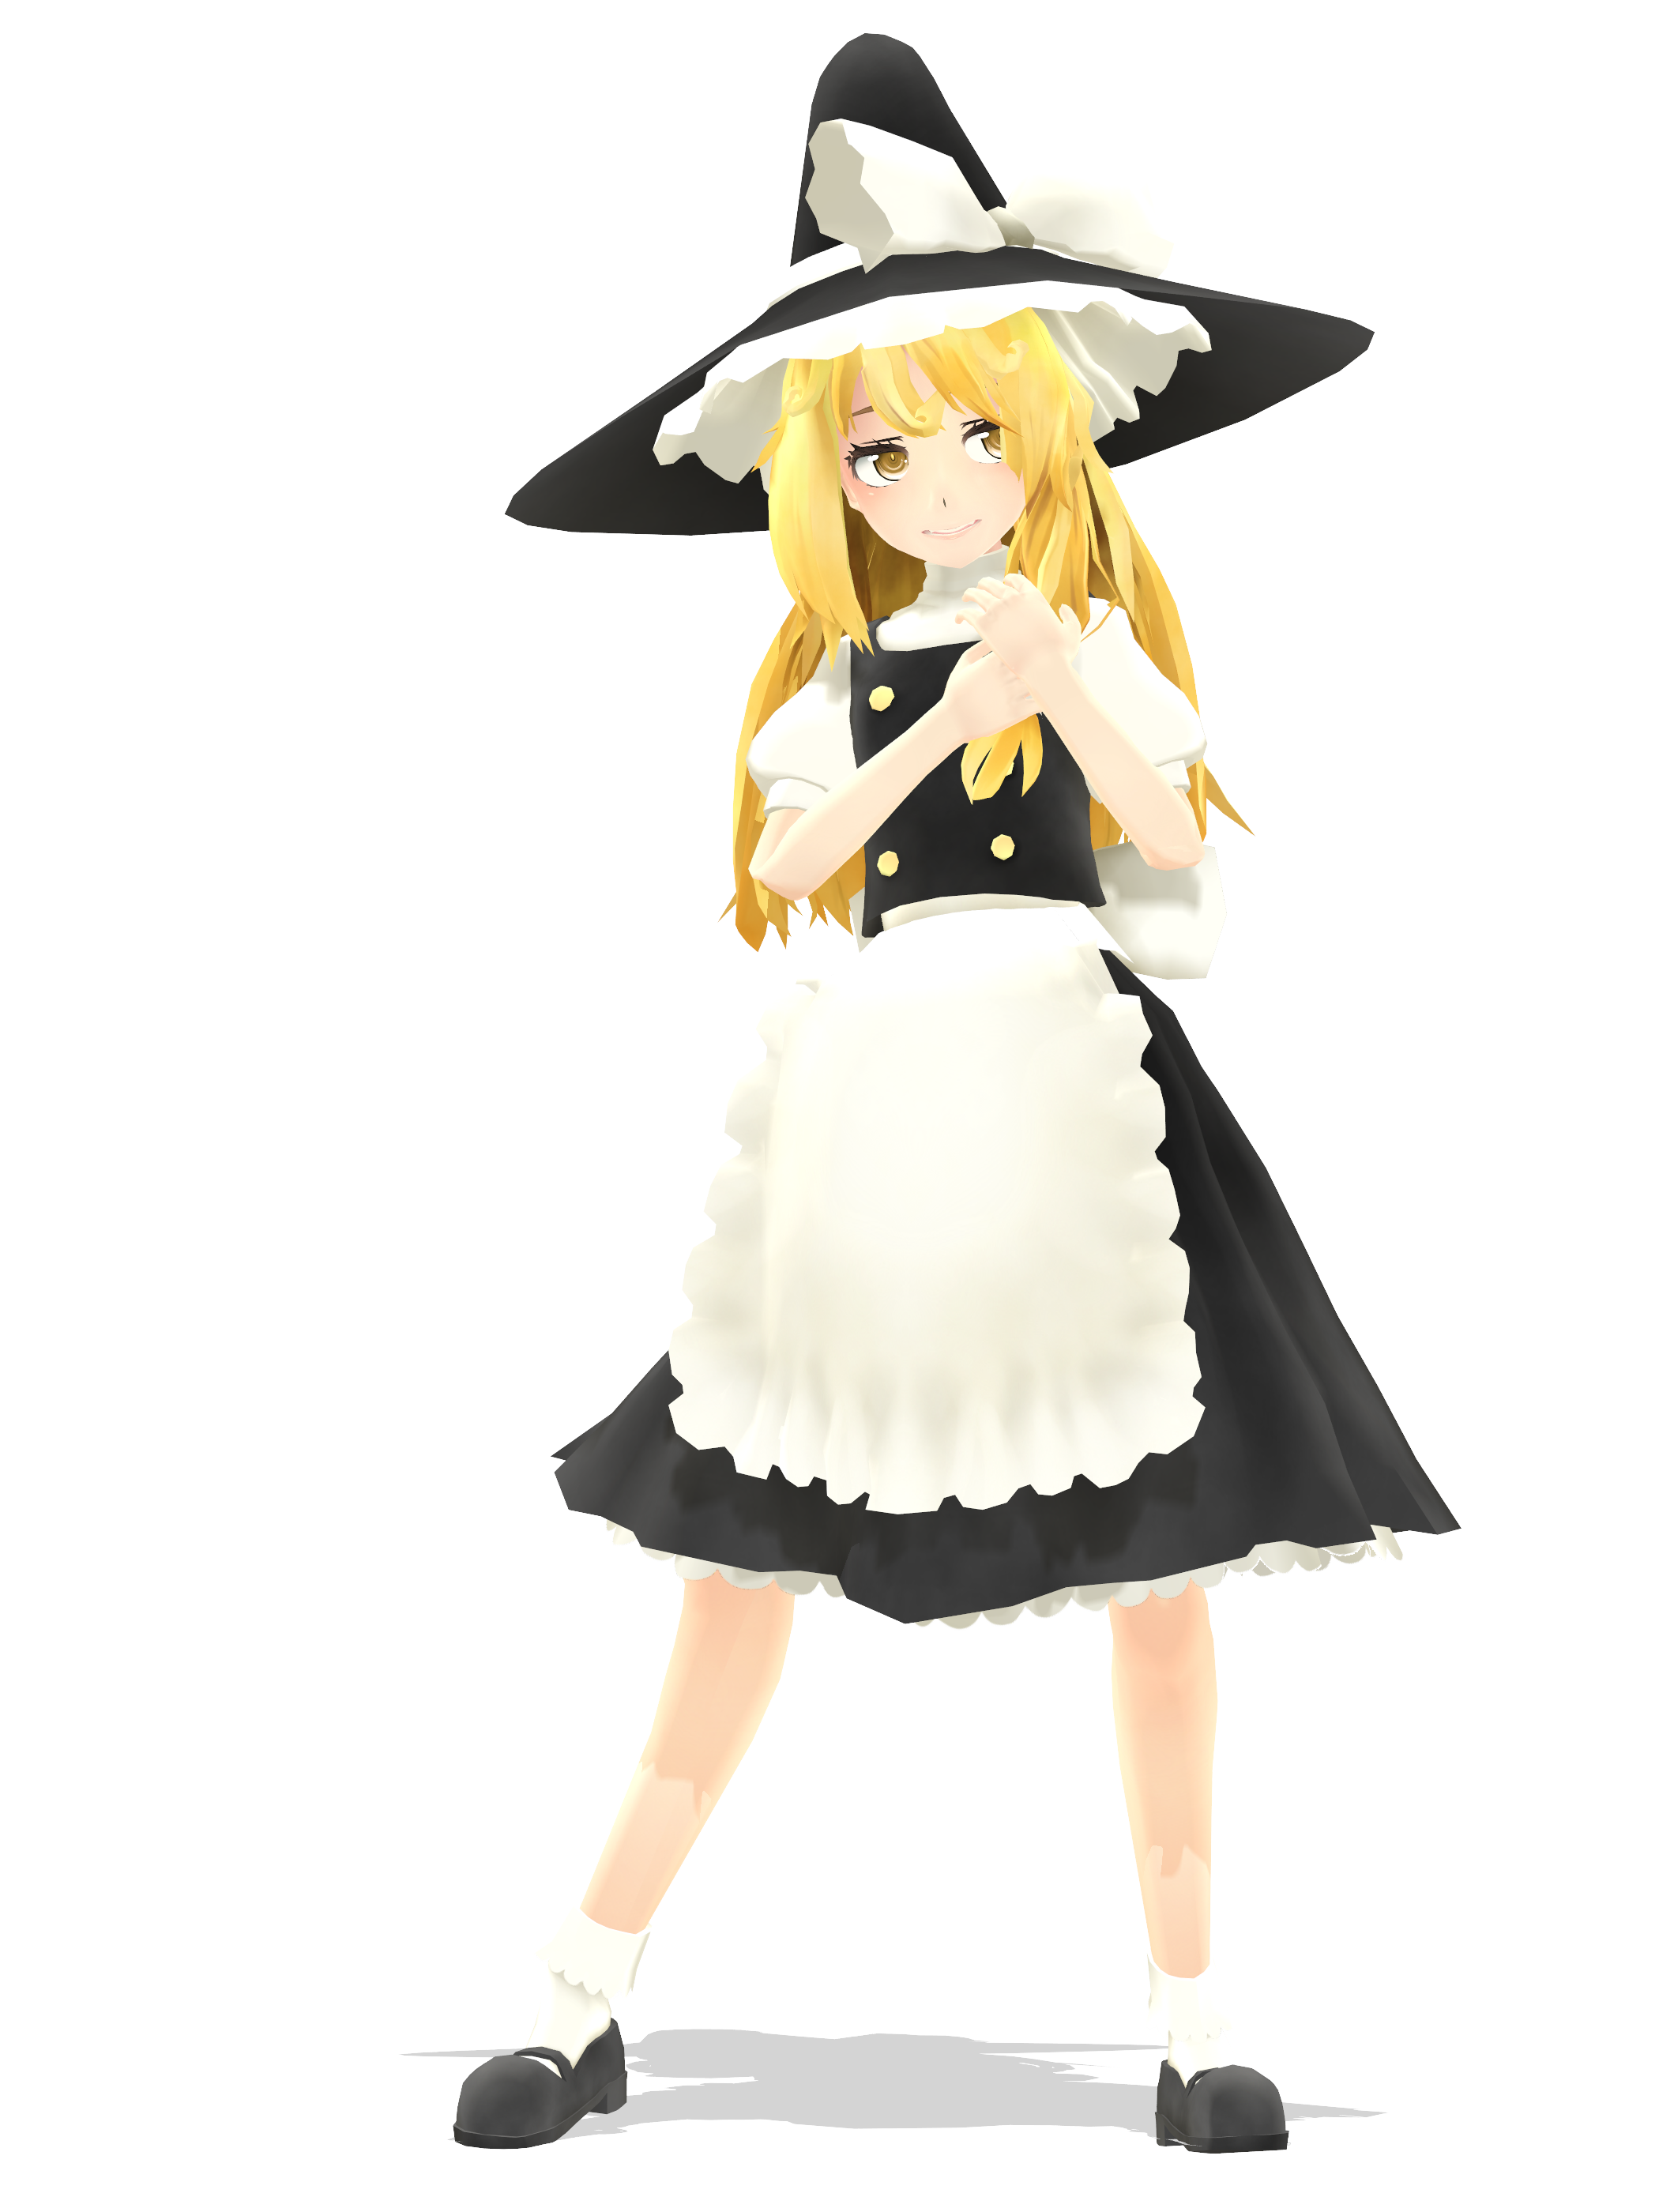 Mmd r18 touhou alice - 3 4